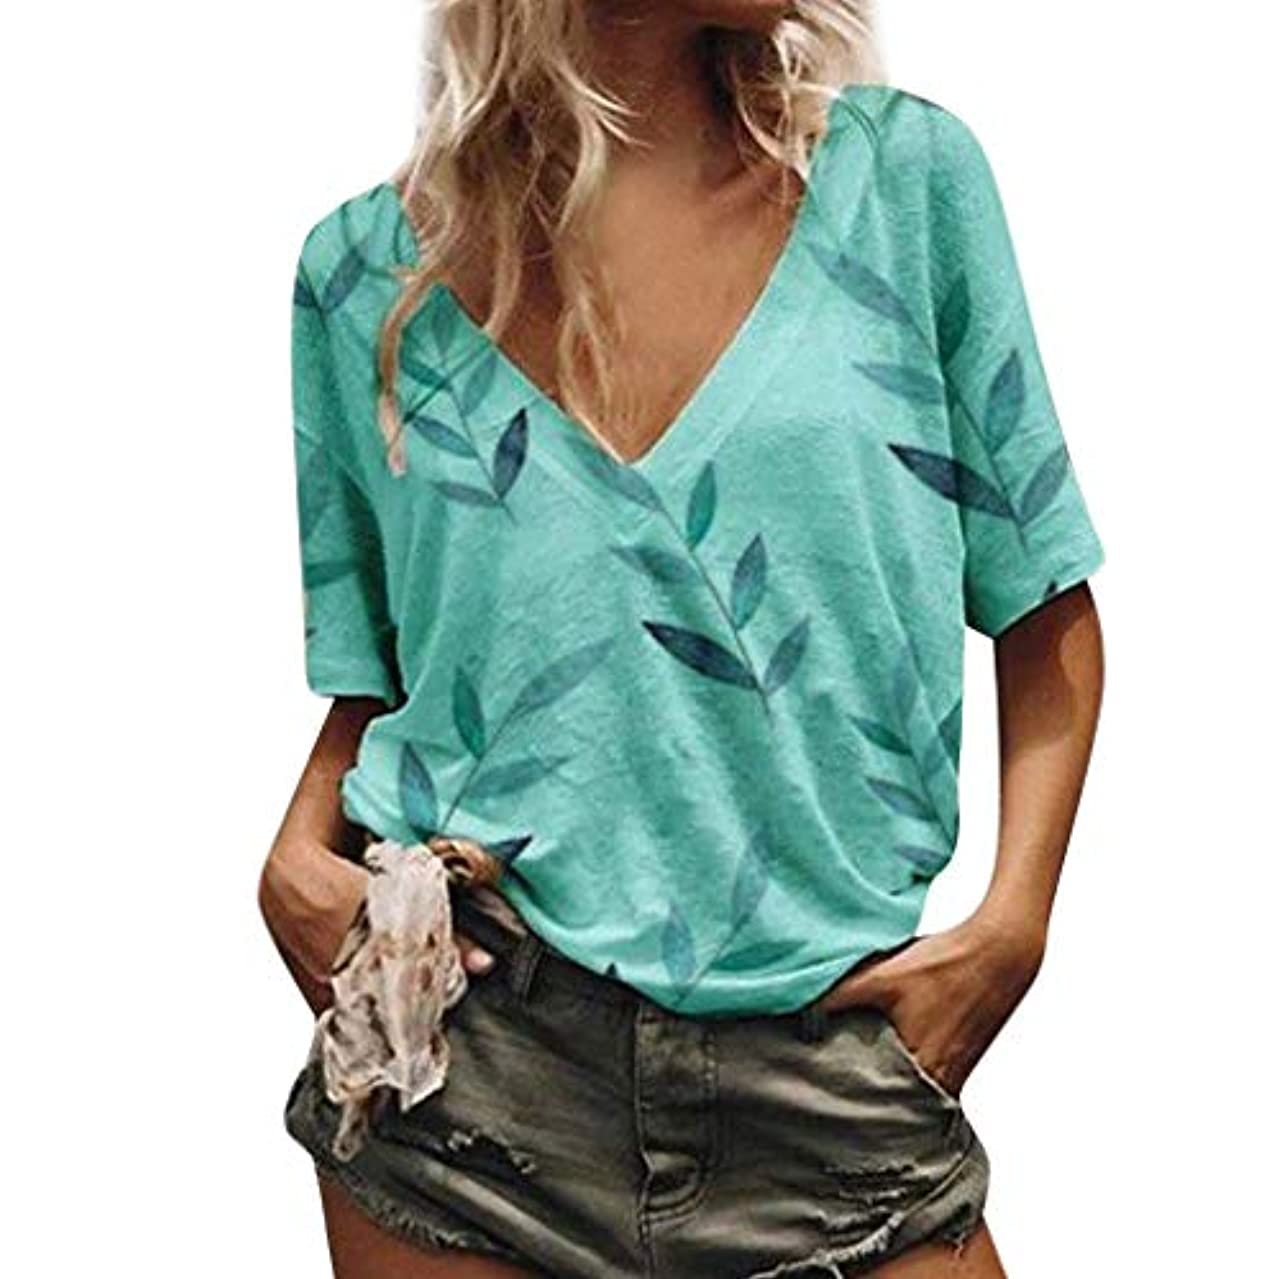 Women's Blouse Casual Cotton Linen Short Sleeve Floral Print Deep V Neck Loose Tops